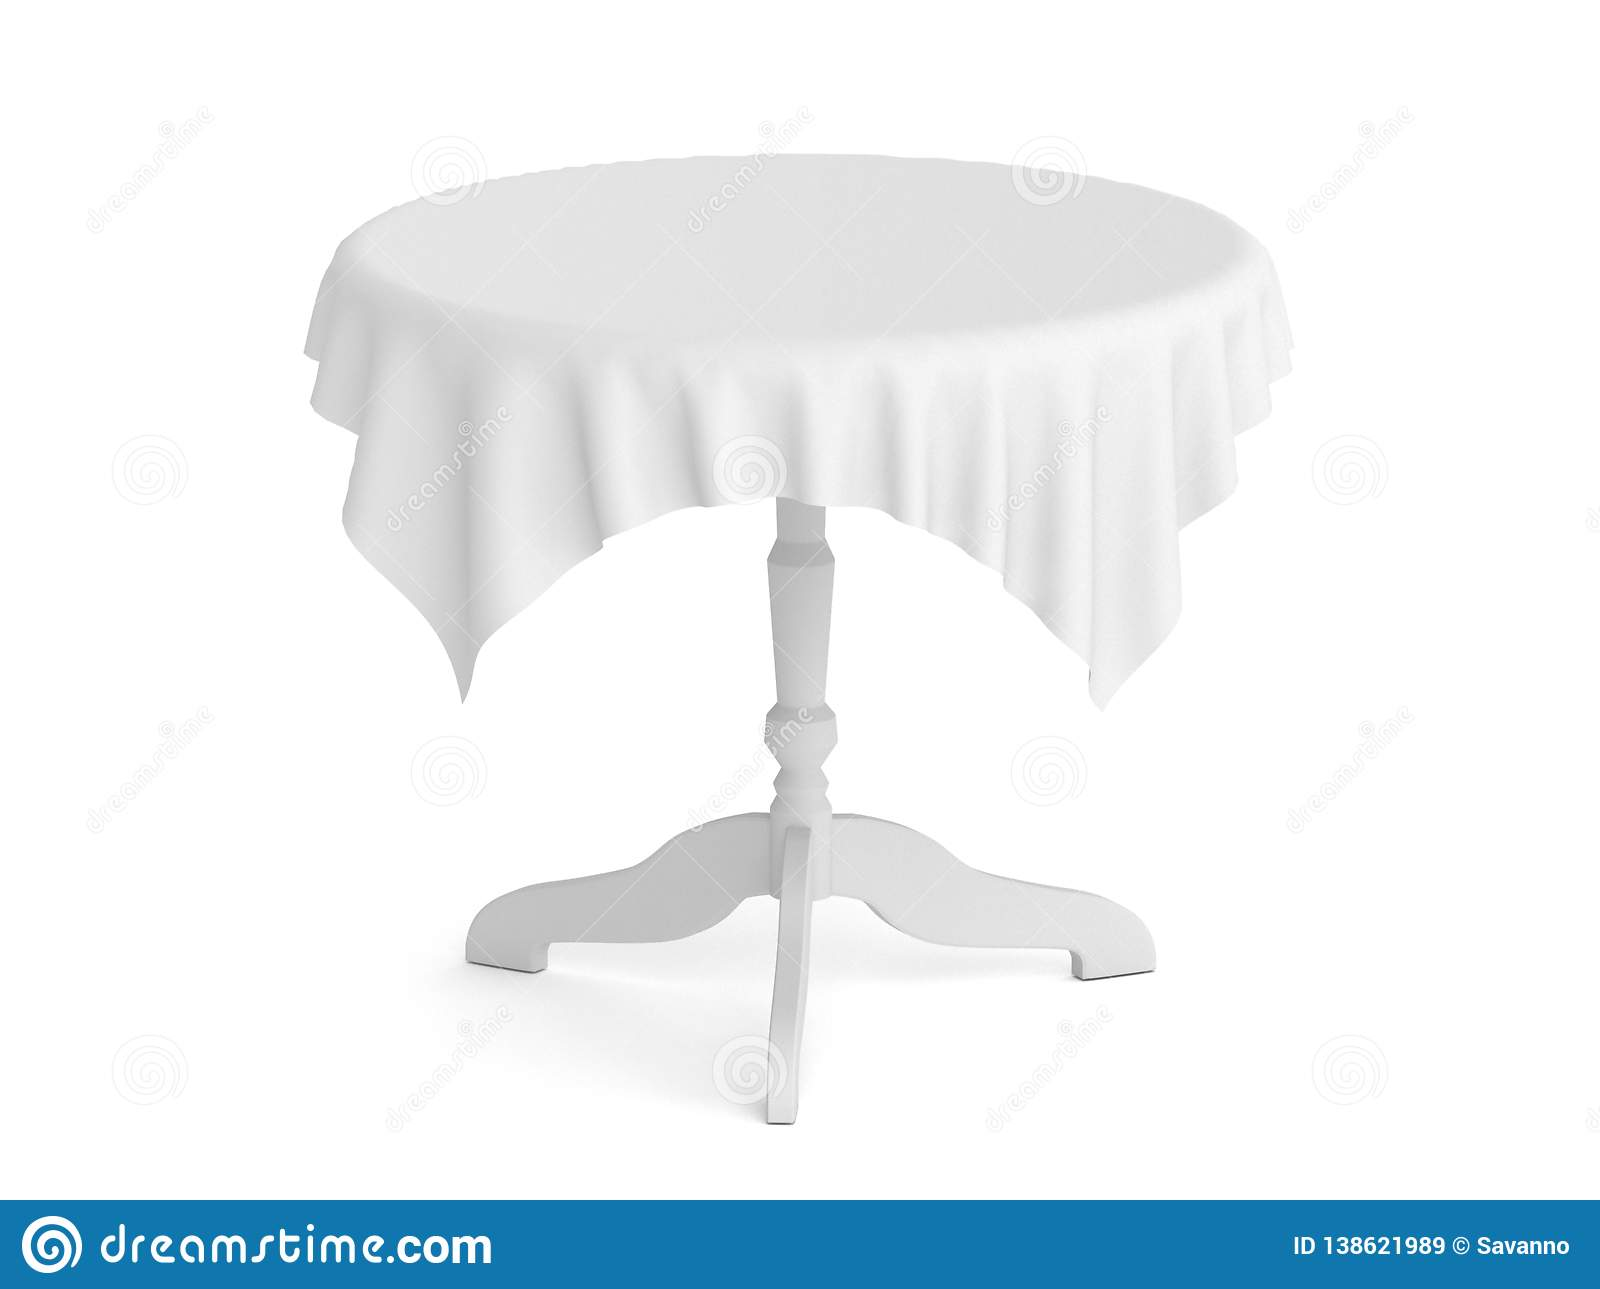 Round Table With Tablecloth.Round Table With White Tablecloth 3d Rendering Illustration Stock